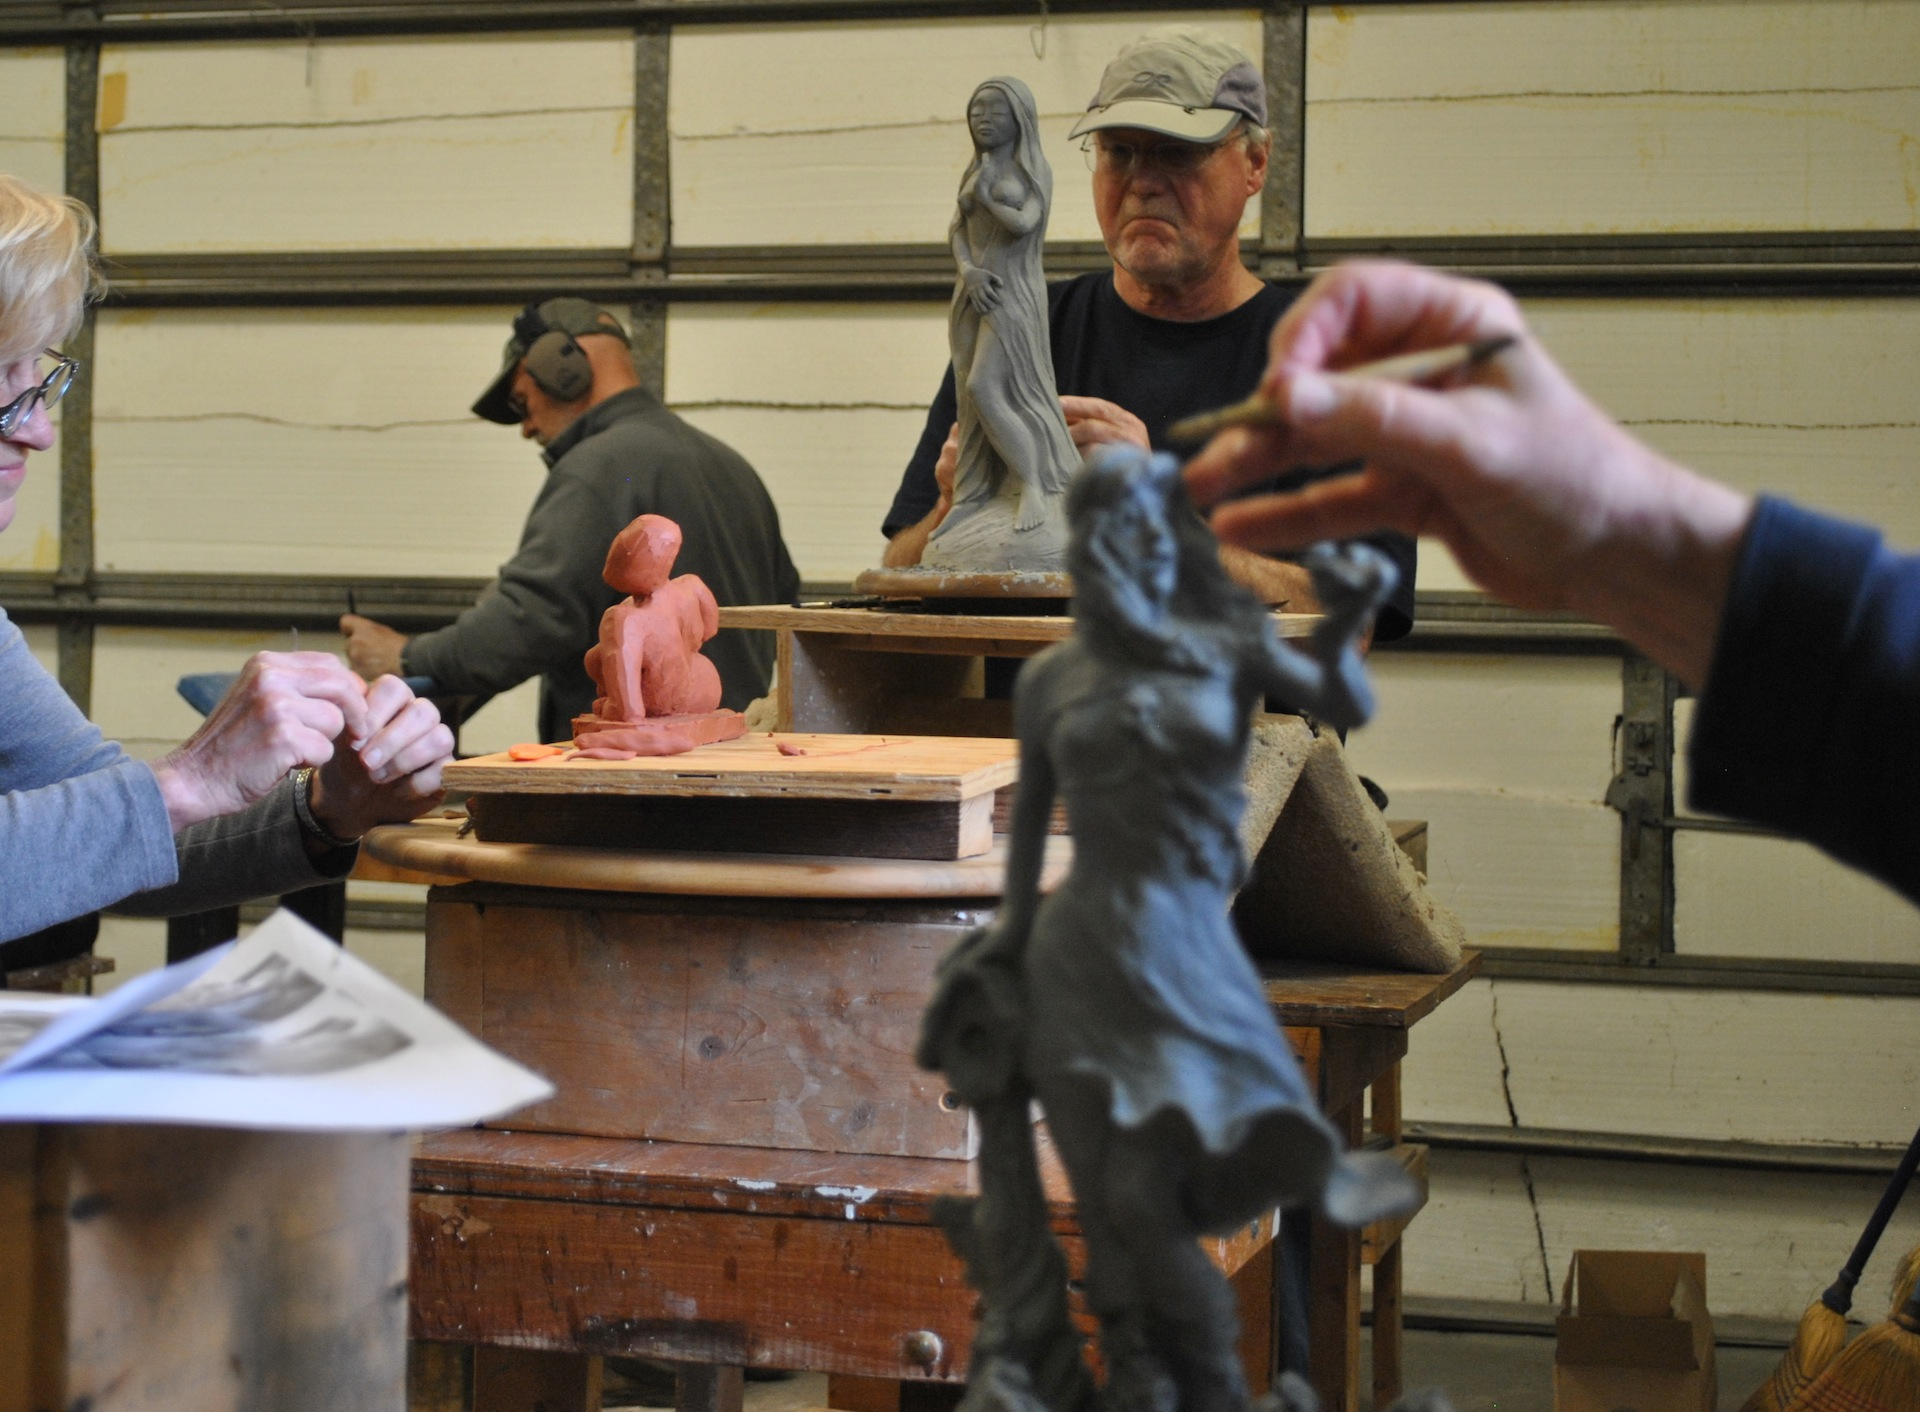 Several more experienced sculptors' clay sculptures underway.